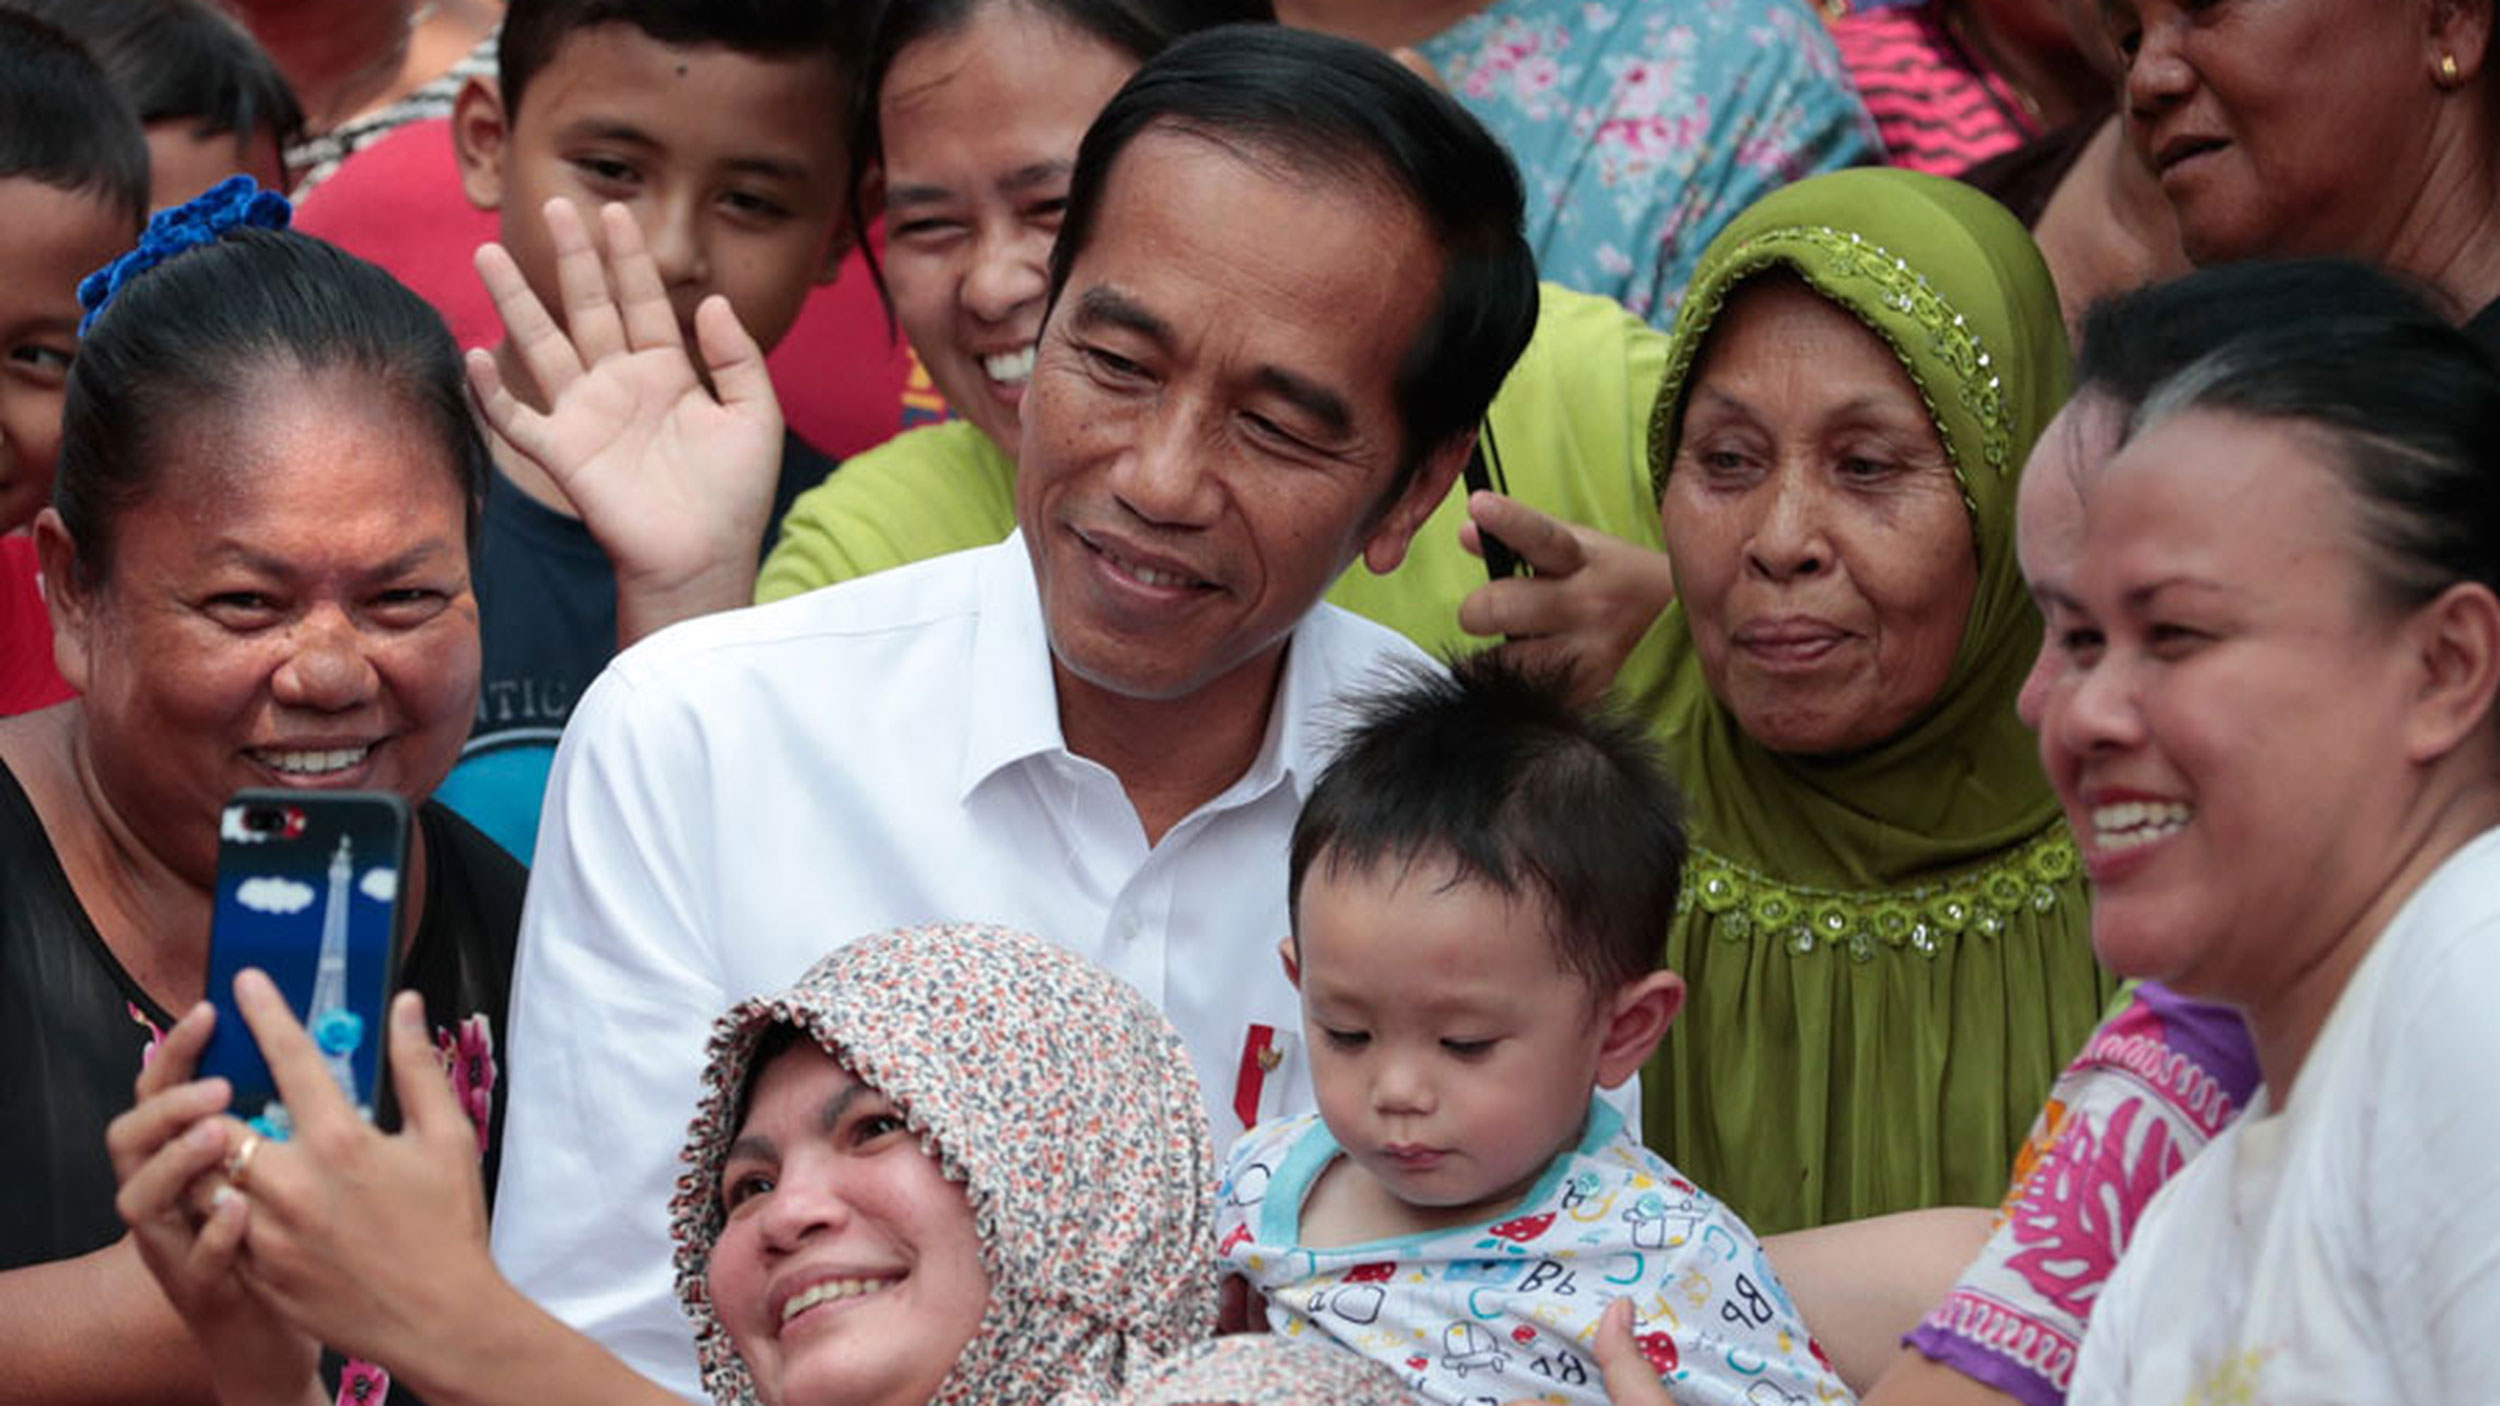 People take selfies with Joko Widodo in a slum in Jakarta on May 21, 2019. Ever since he got re-elected as Indonesia's president last month, his focus has been on development